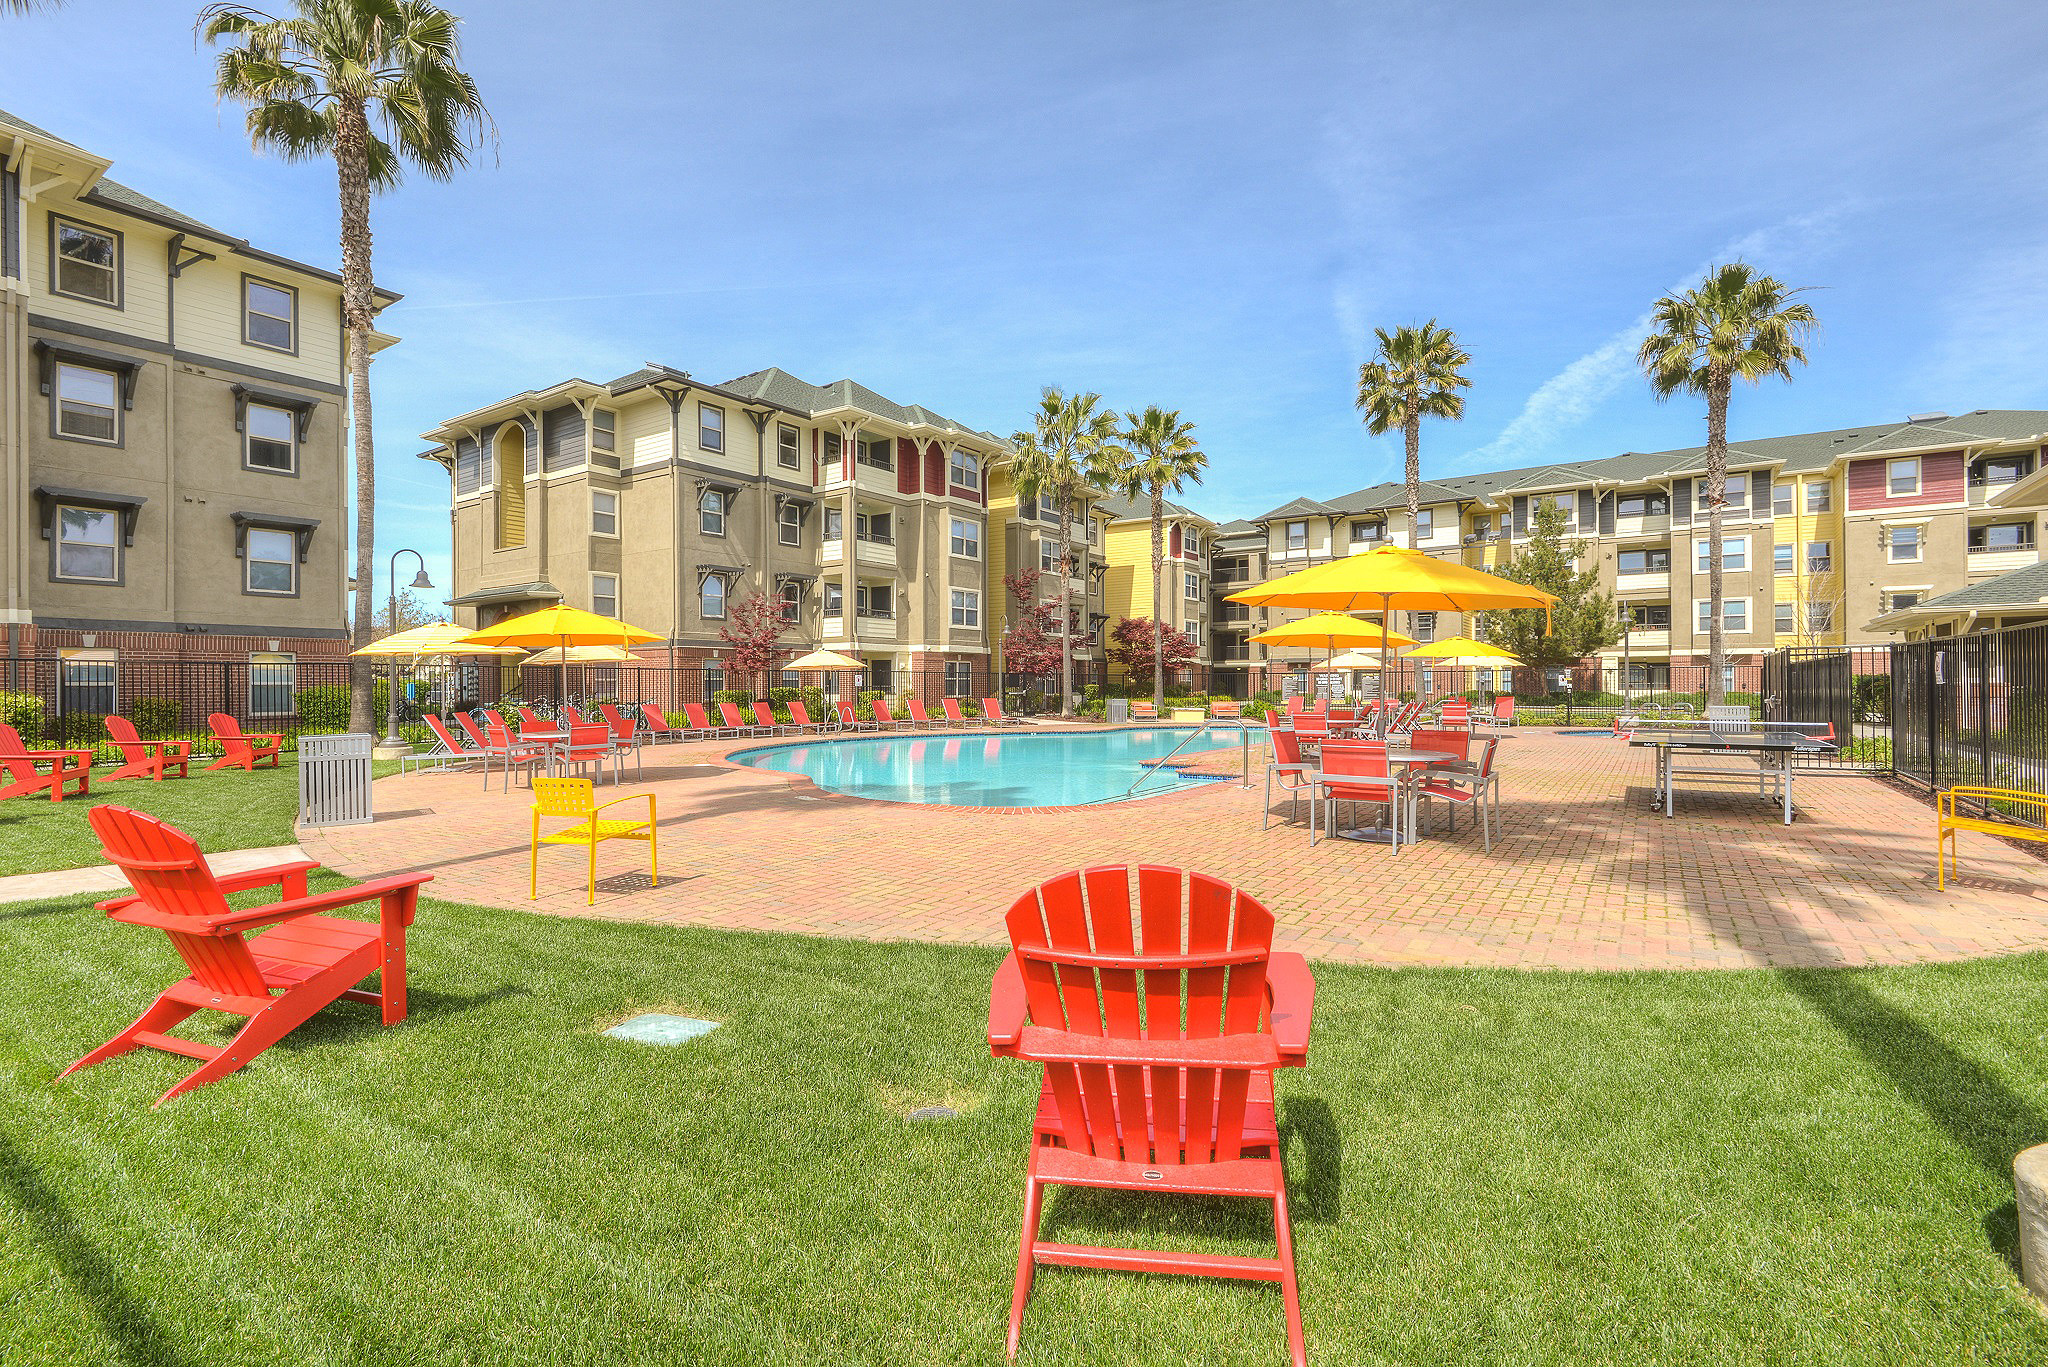 Exterior of lawn, pool deck and pool surrounded by palm trees and 4-story apartment complex